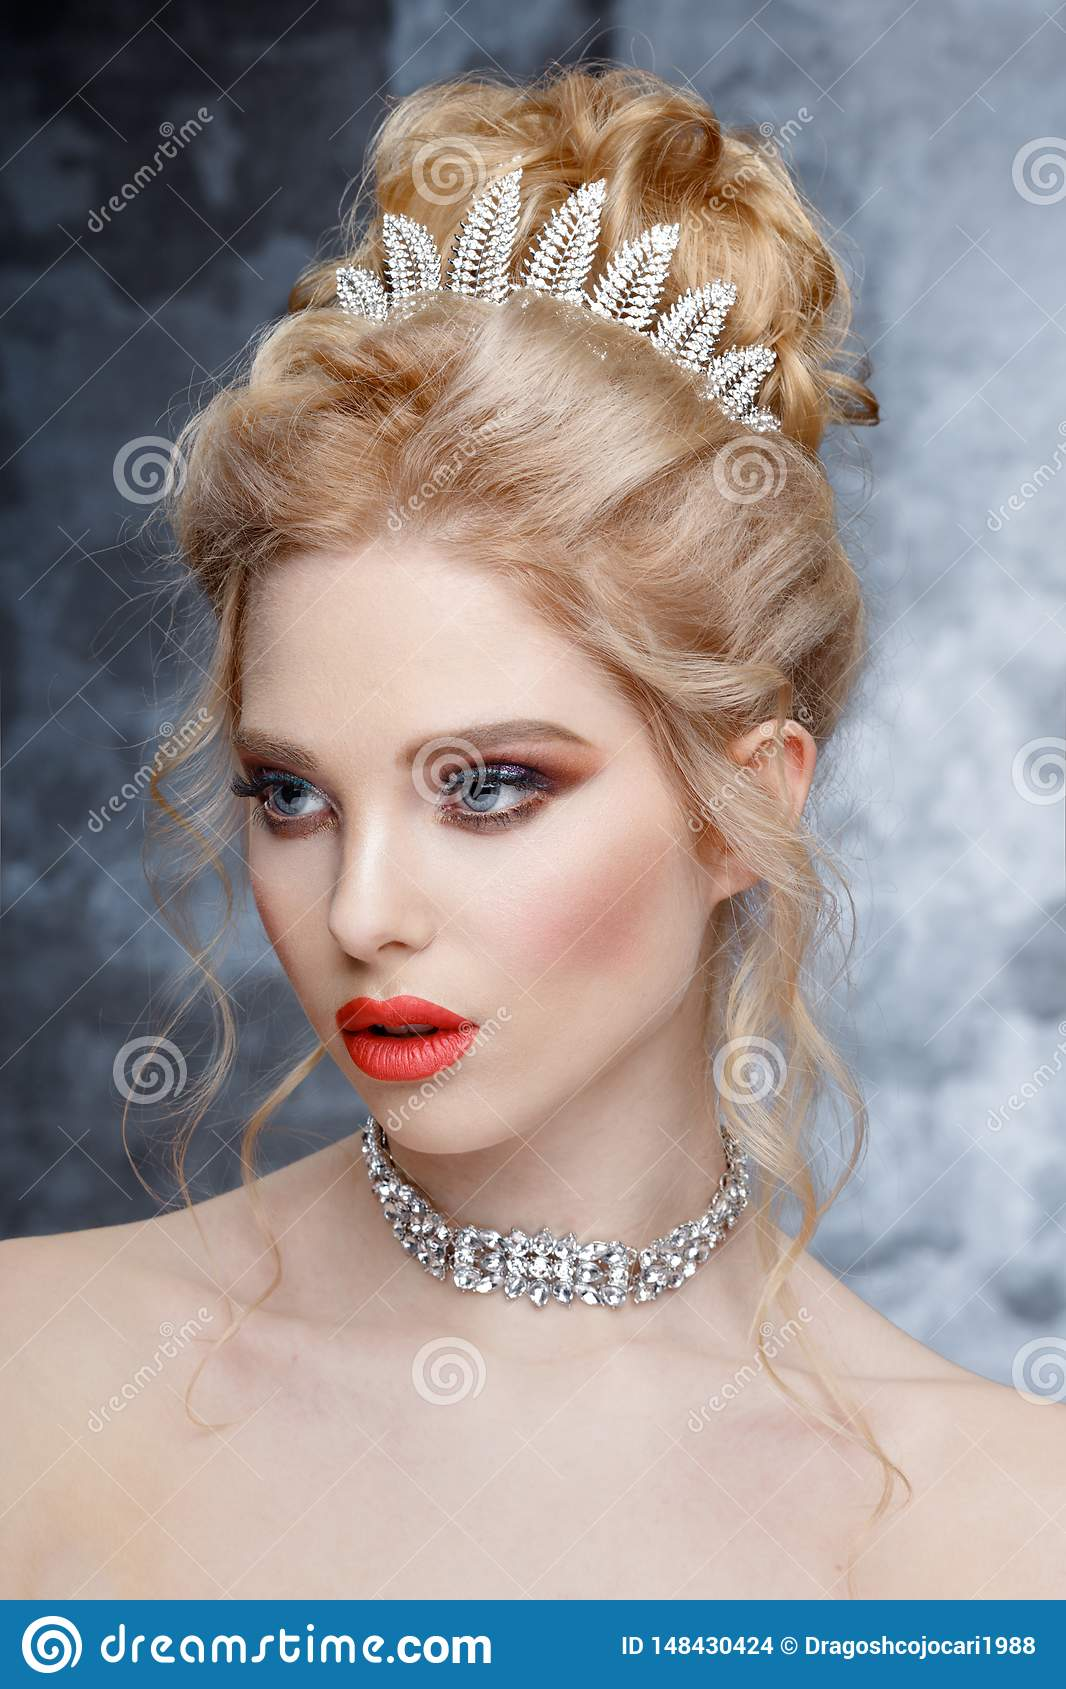 Fashion Portrait of Beautiful Woman with Tiara on head. Elegant Hairstyle. Perfect Make-Up and Jewelry. Coral Lips